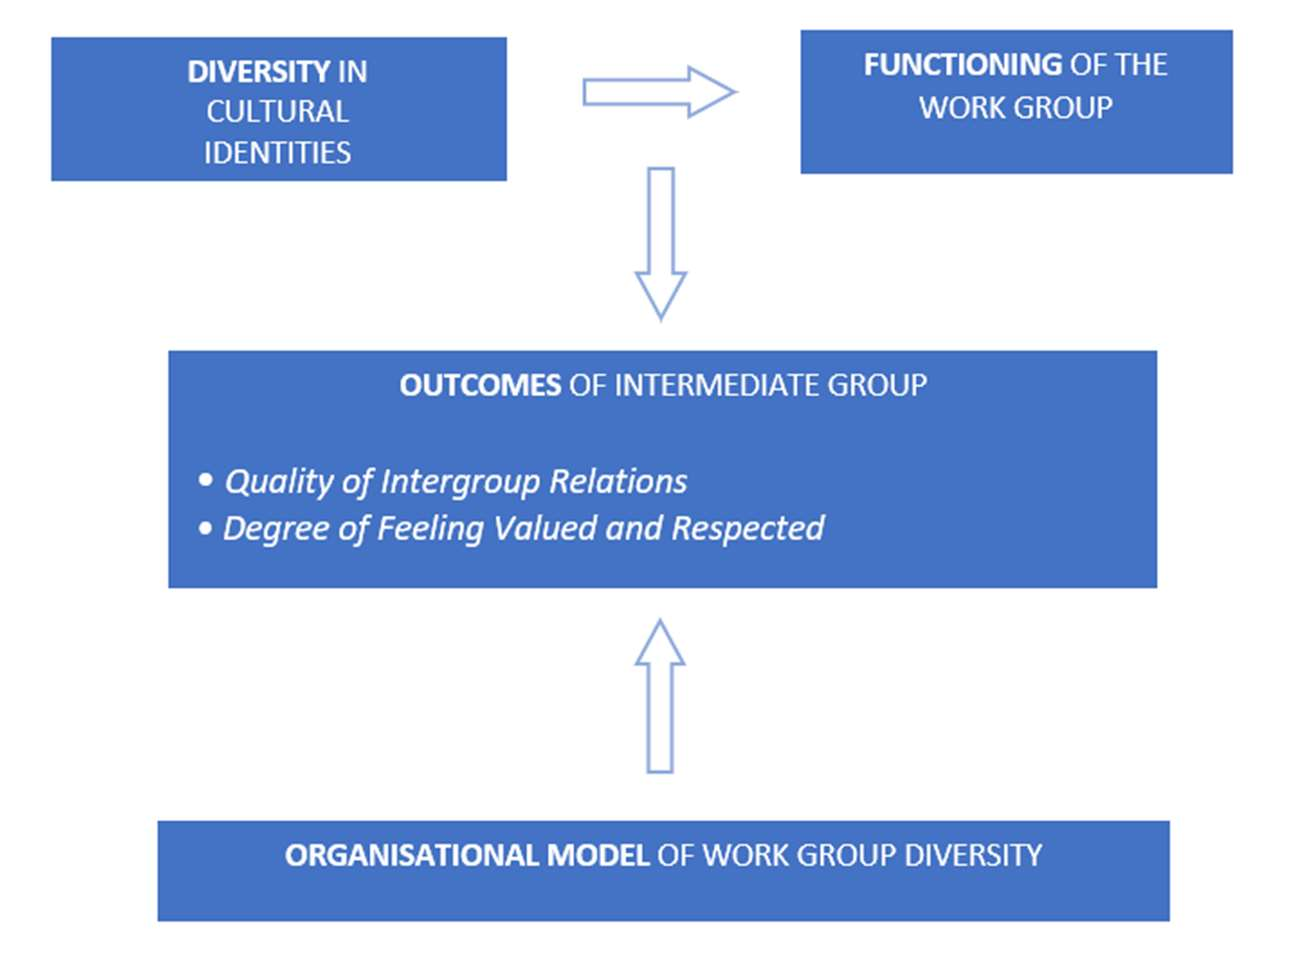 Relationship between cultural diversity and the functioning of a workgroup. Source: Thomas and Ely (2011).